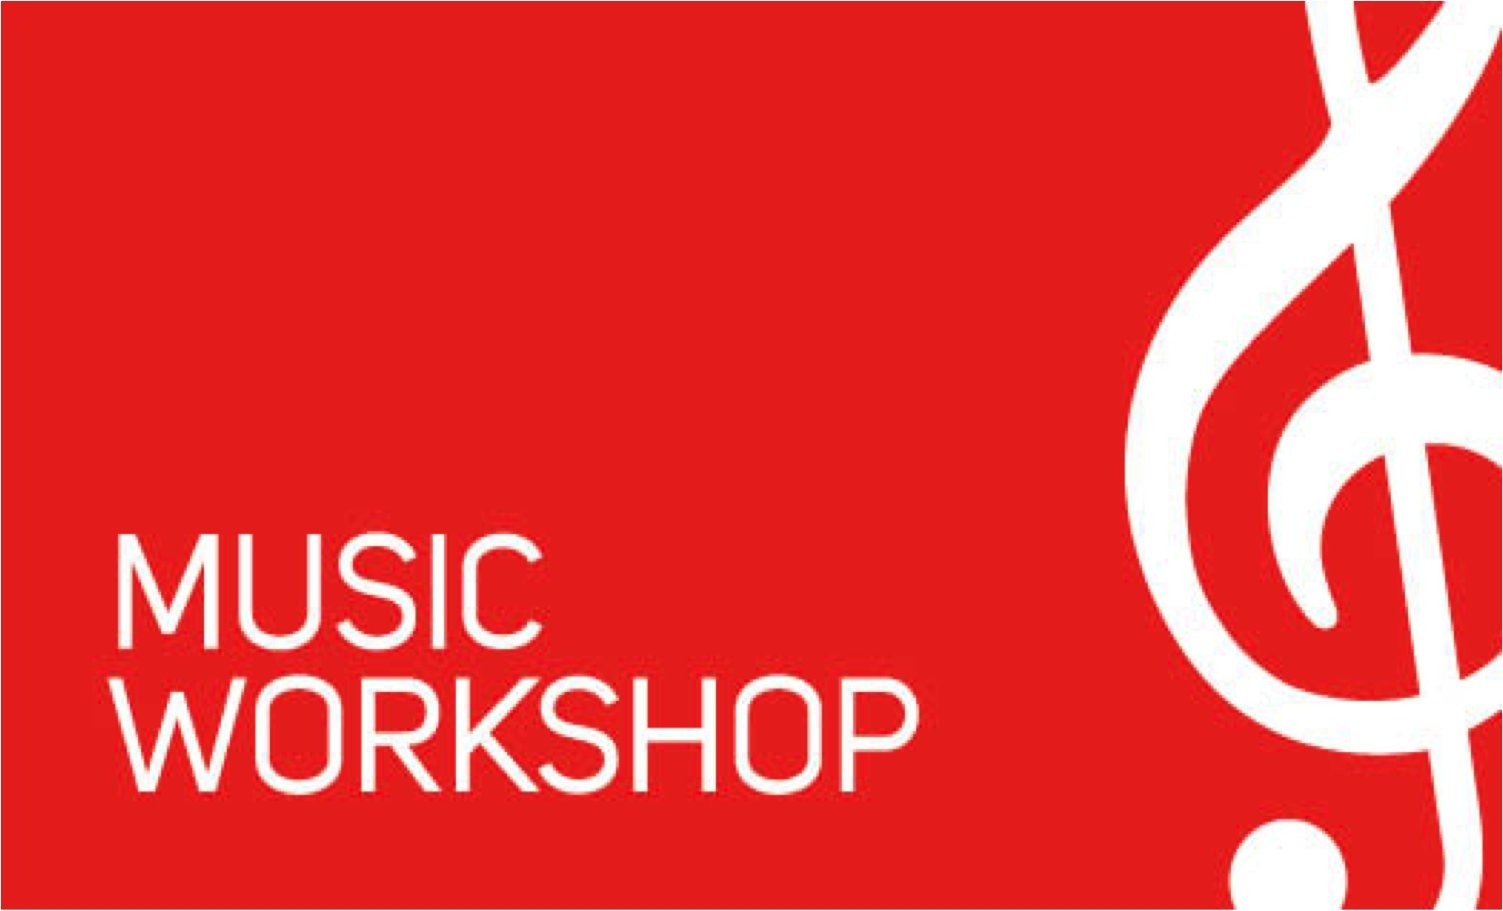 Music Workshop Instrument Series Primary Music Ed Globalgiving